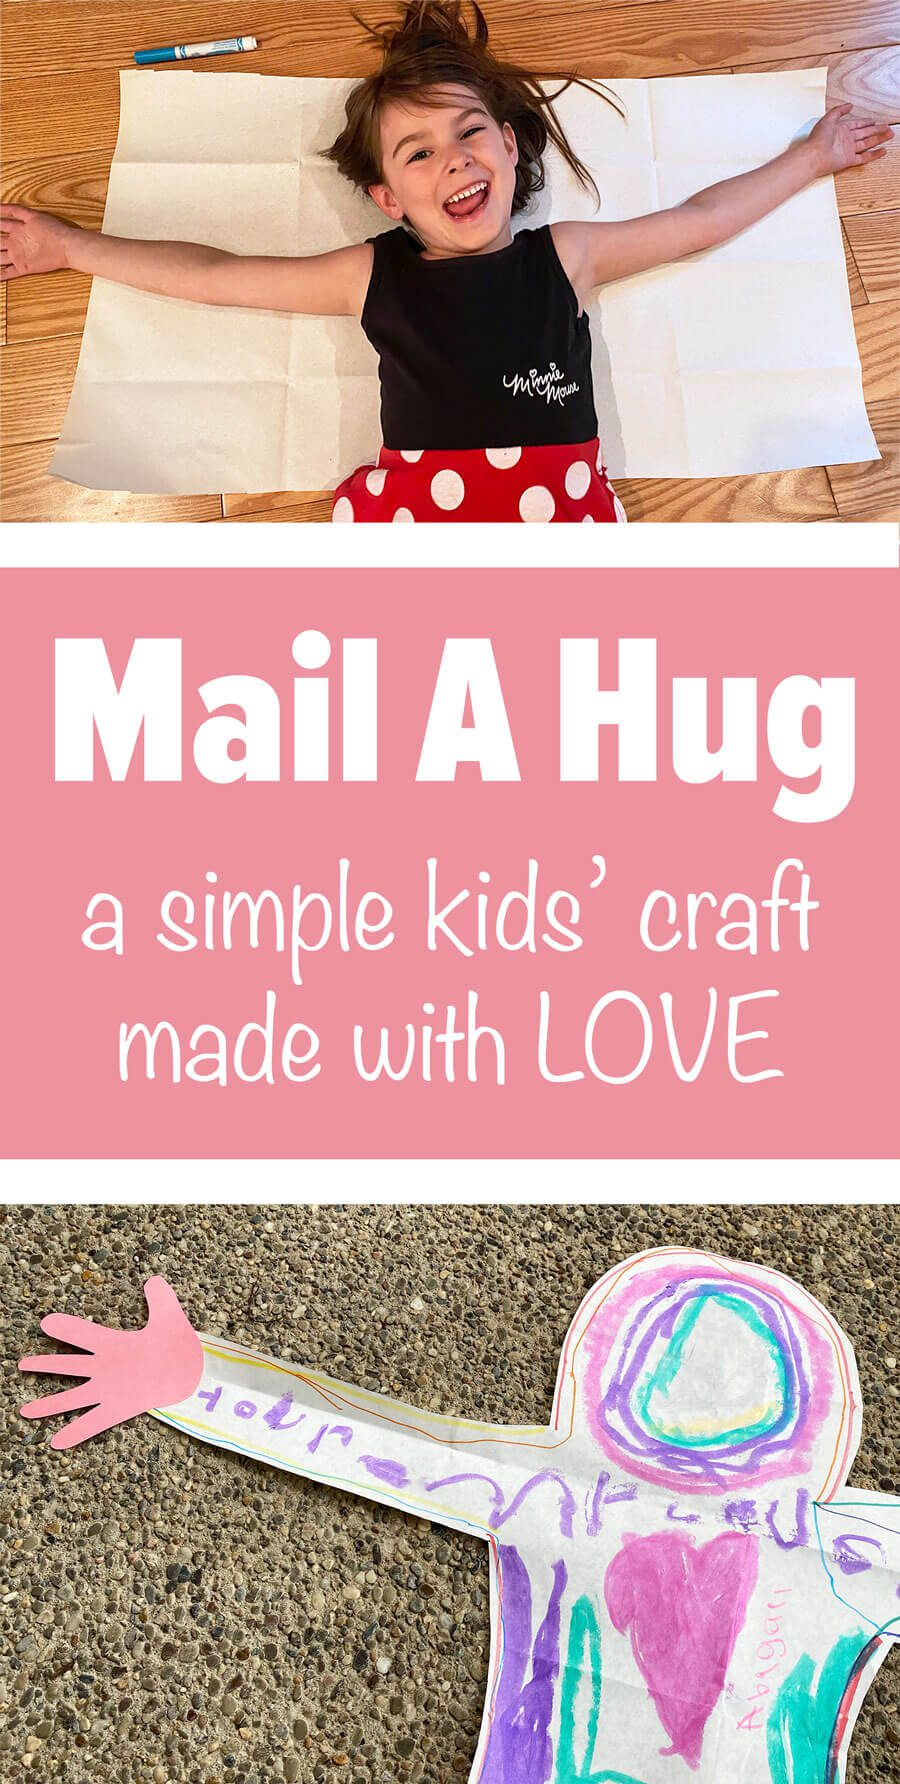 Brighten someone's day! Send a hug from your child. This simple family-friendly craft is perfect for quarantine, grandparents day, deployed parents and more! Get inspired and learn how to create your own from our blog. #diycraft #familyfriendly #shareahug #makeahug #mailahug